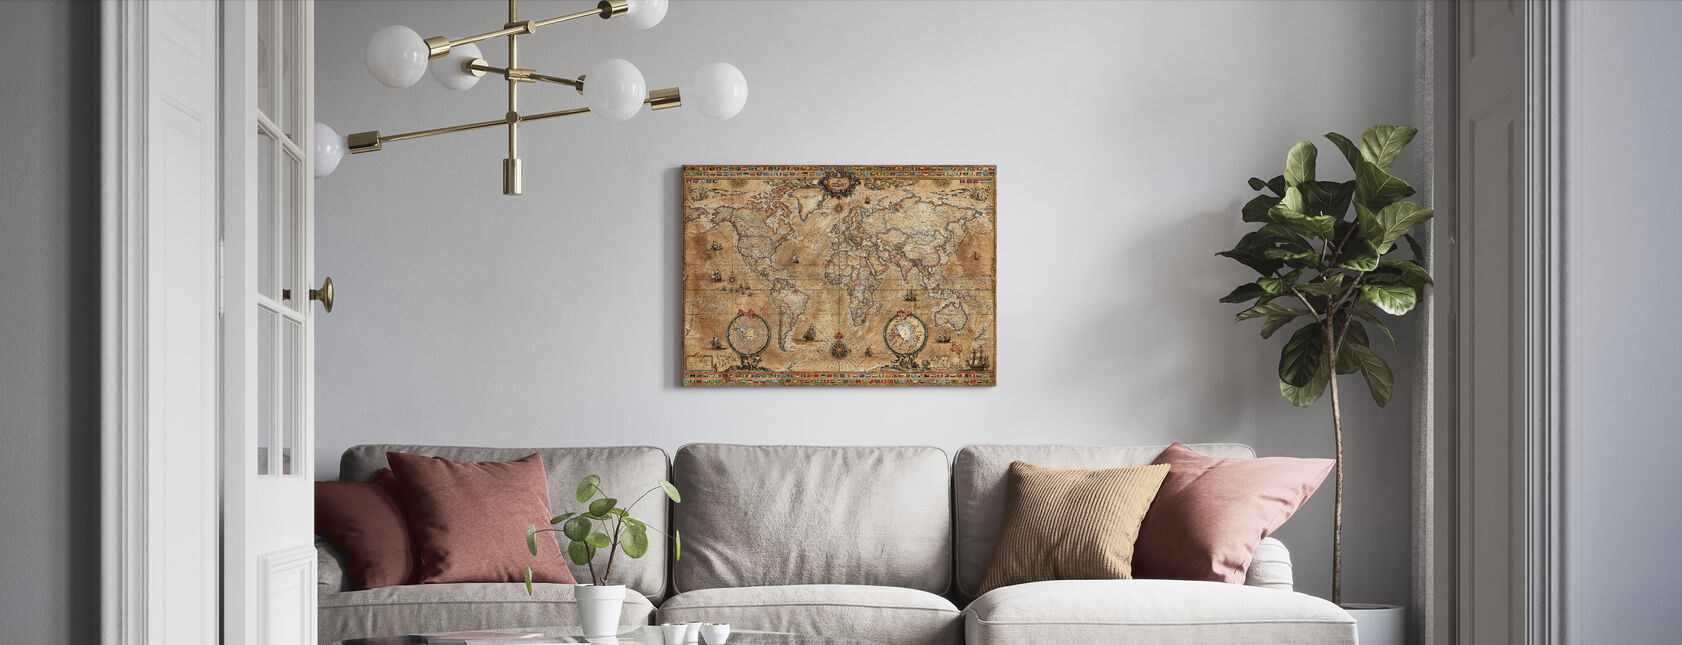 Pergament Map - Canvas print - Living Room